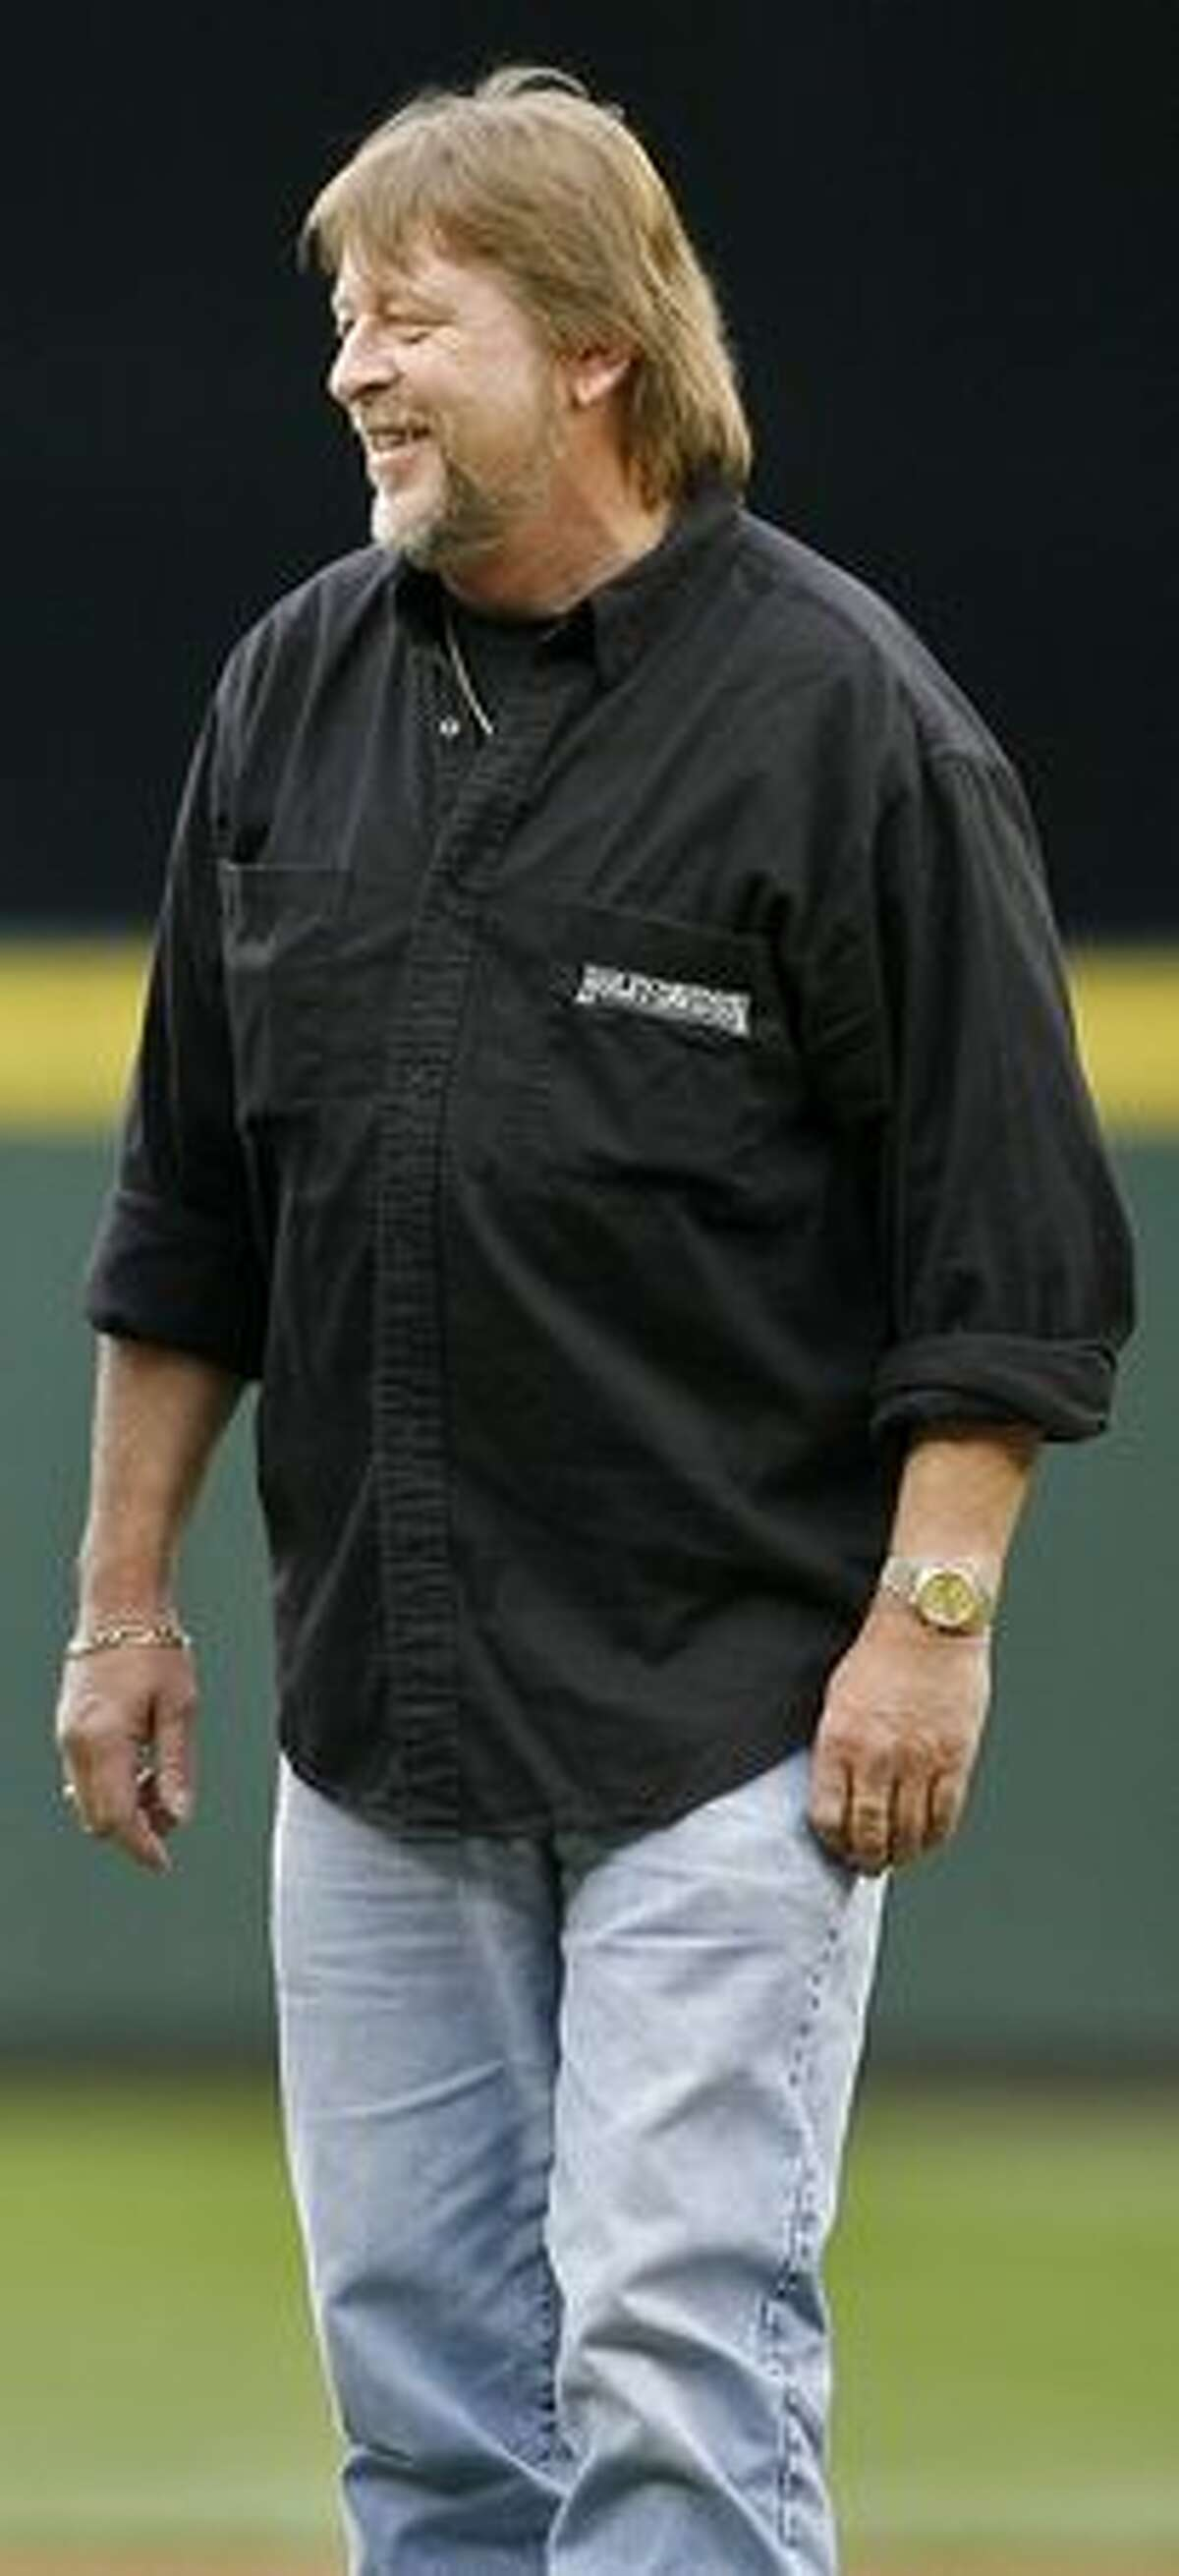 Captain Phil Harris looks on during the ceremonial first pitch before a Seattle Mariners game at Safeco Field in Seattle on May 8, 2008.